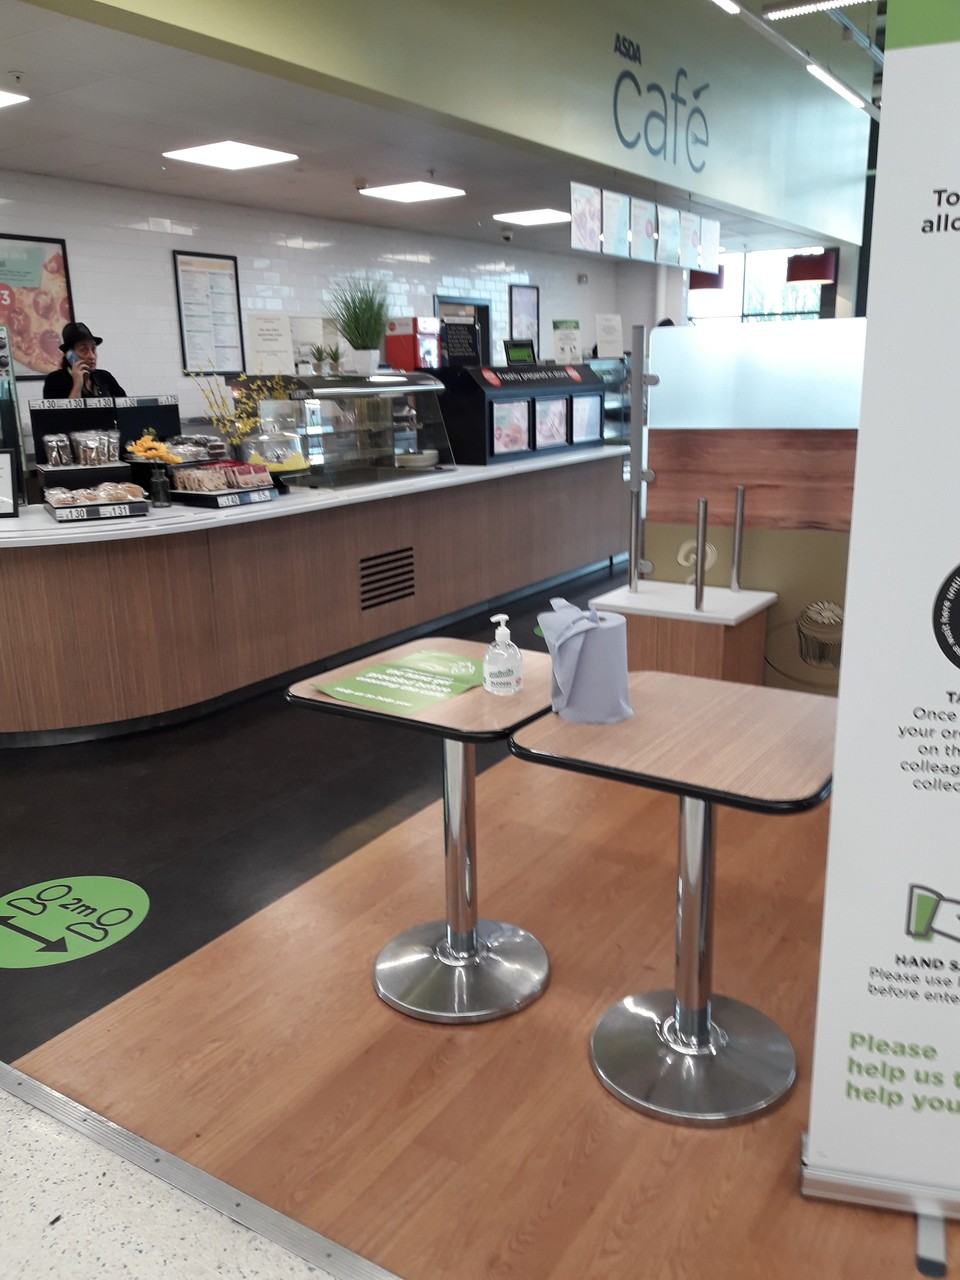 Swinton customer cafe reopens  | Asda Swinton